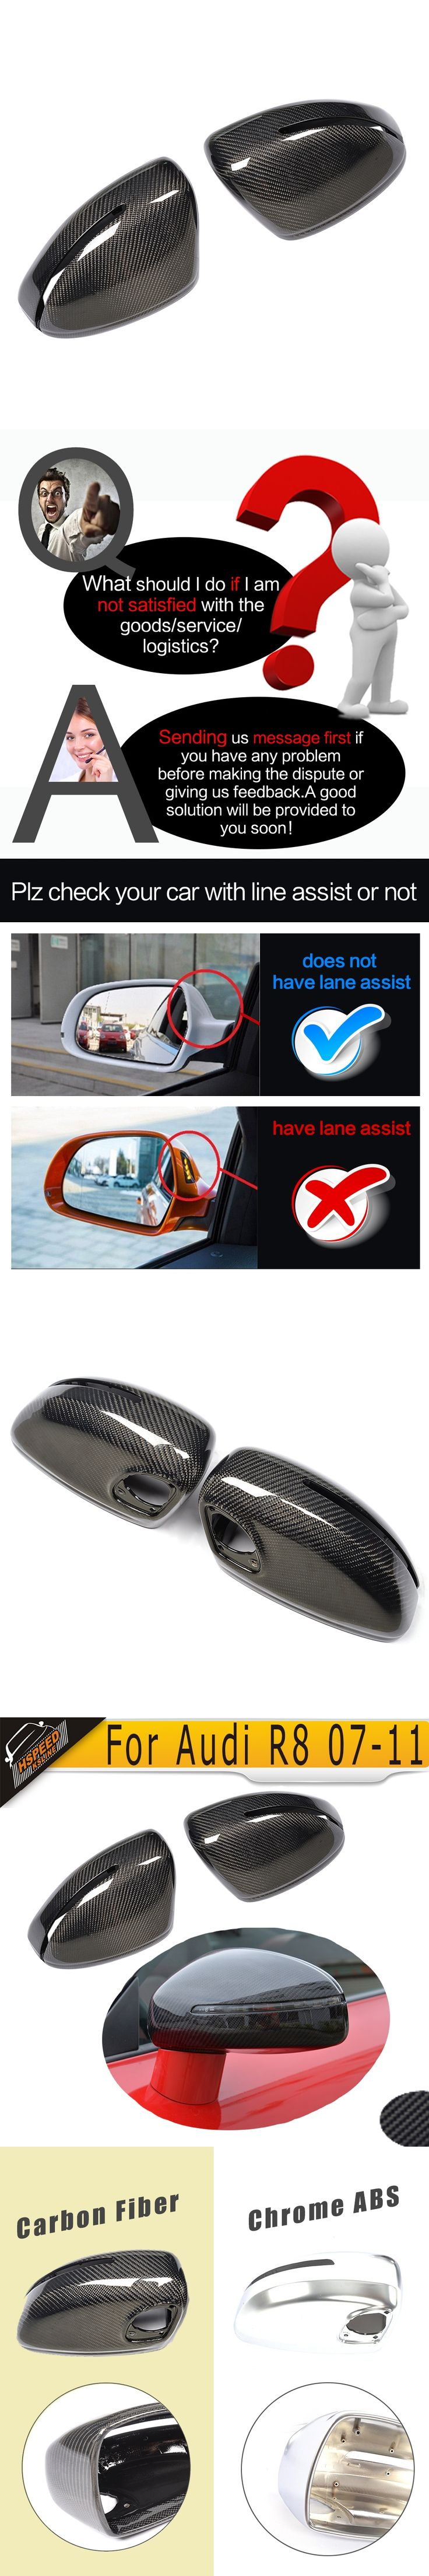 R8 Carbon Fiber Replaced Mirror Covers for Audi R8 2007 2008 2009 2010 2011 Rear Mirror Cap Rearview